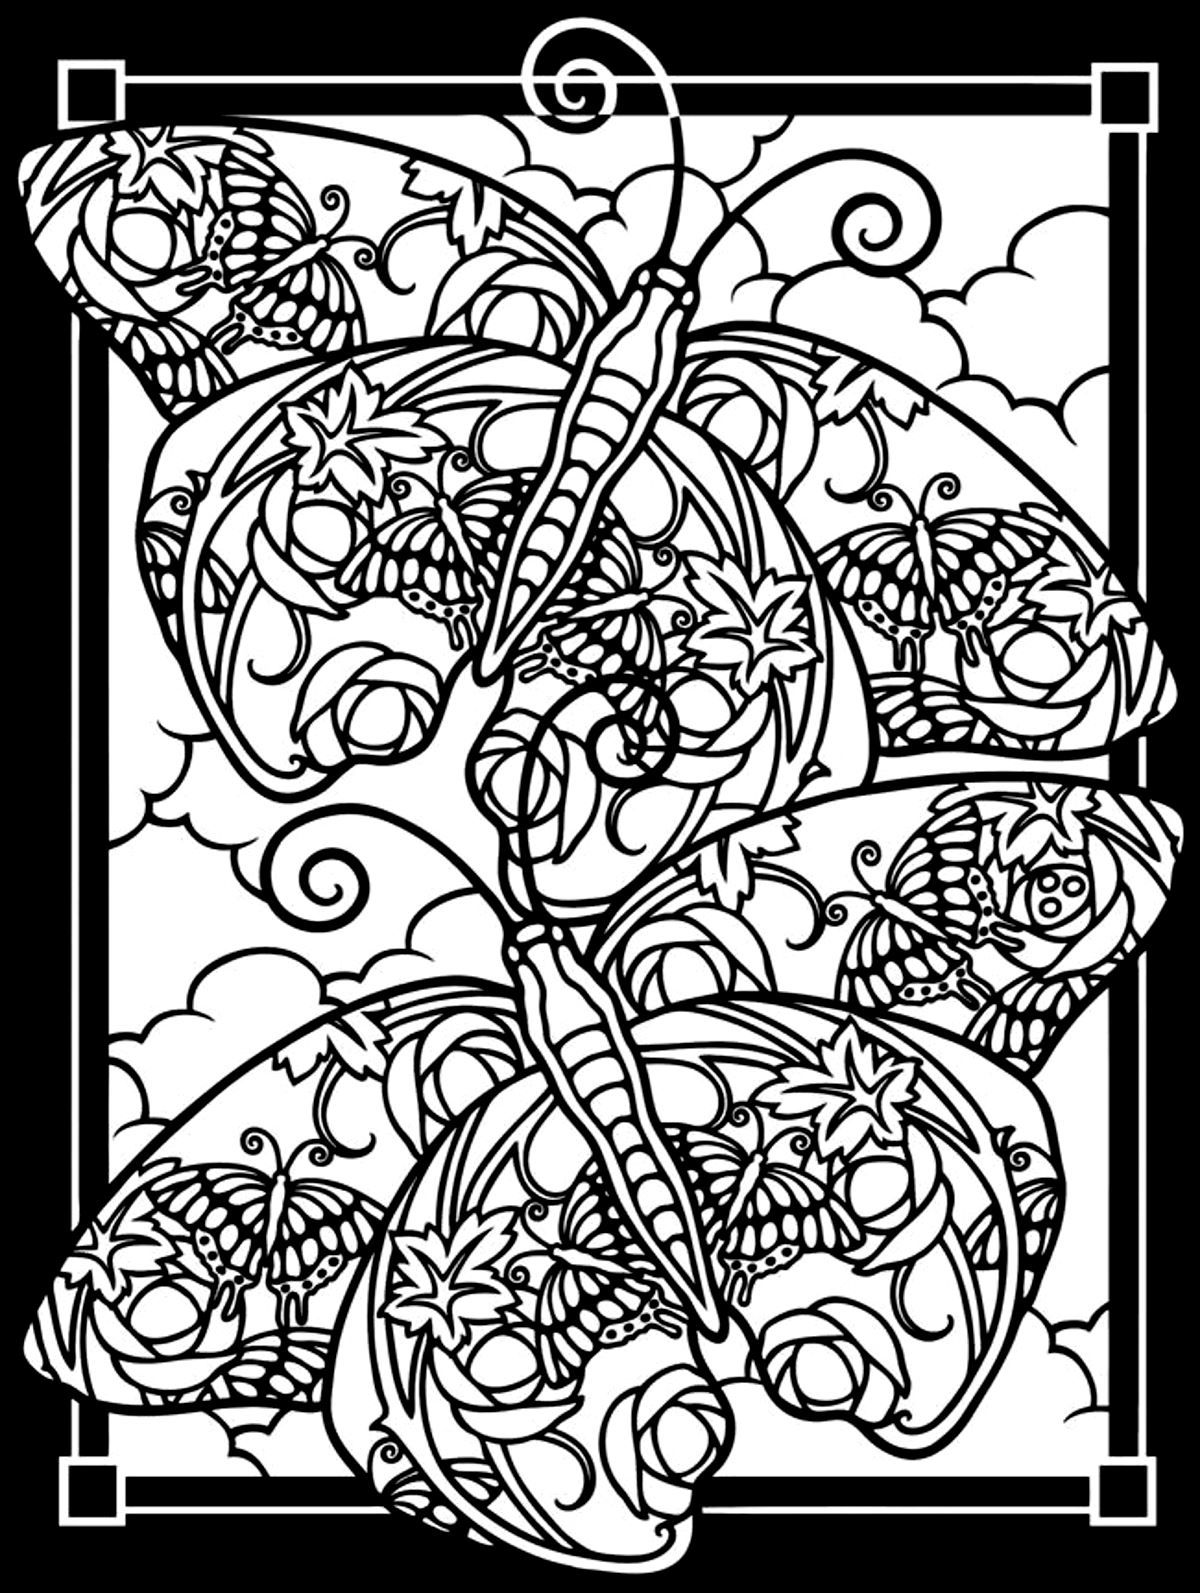 Difficult butterfly coloring pages - Free Coloring Page Coloring Adult Difficult Two Butterflies Black Background